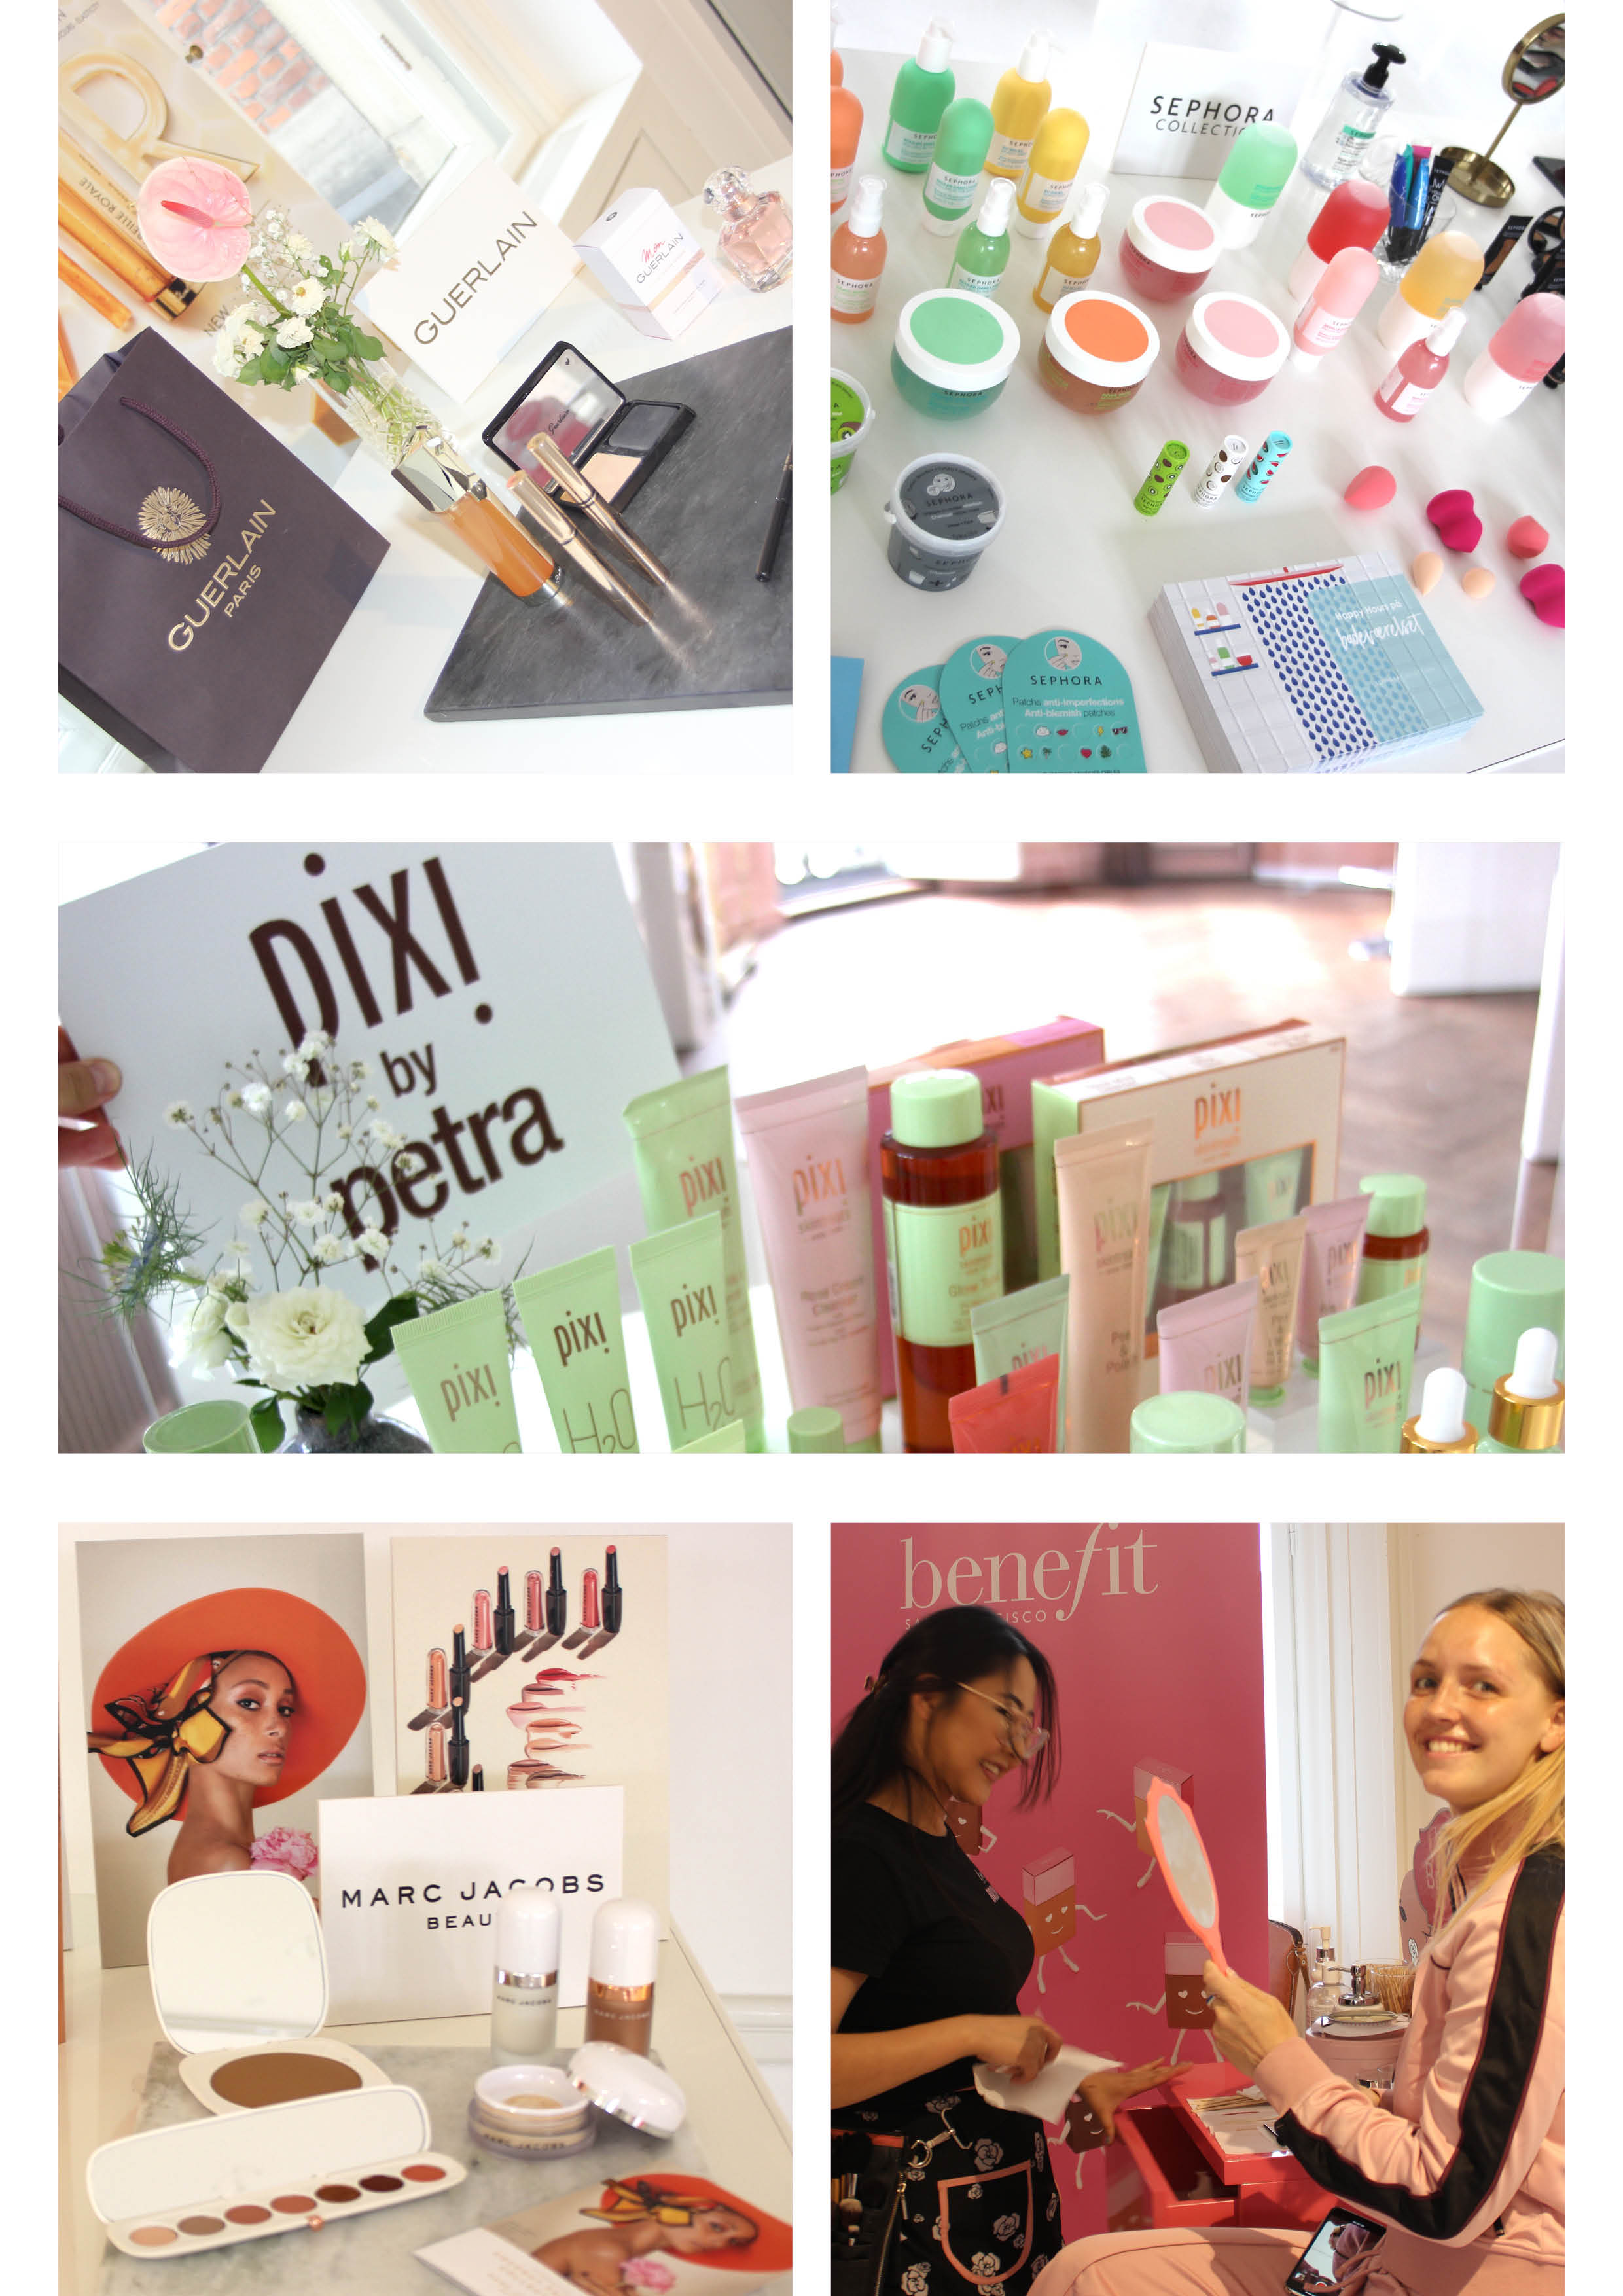 sephora-blog-post2